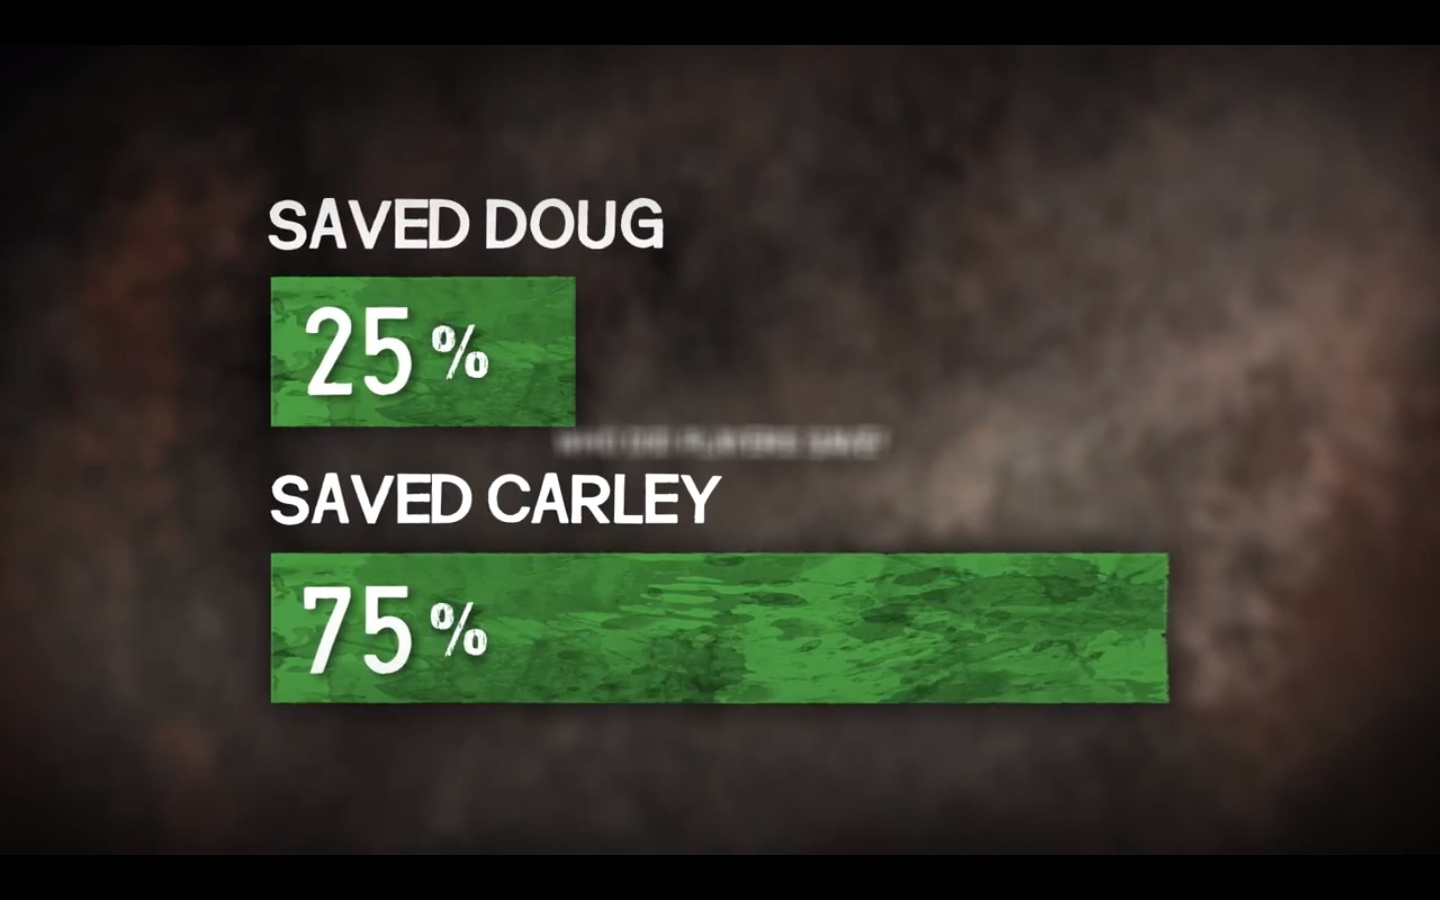 Telltale explores why players preferred Carley to Doug